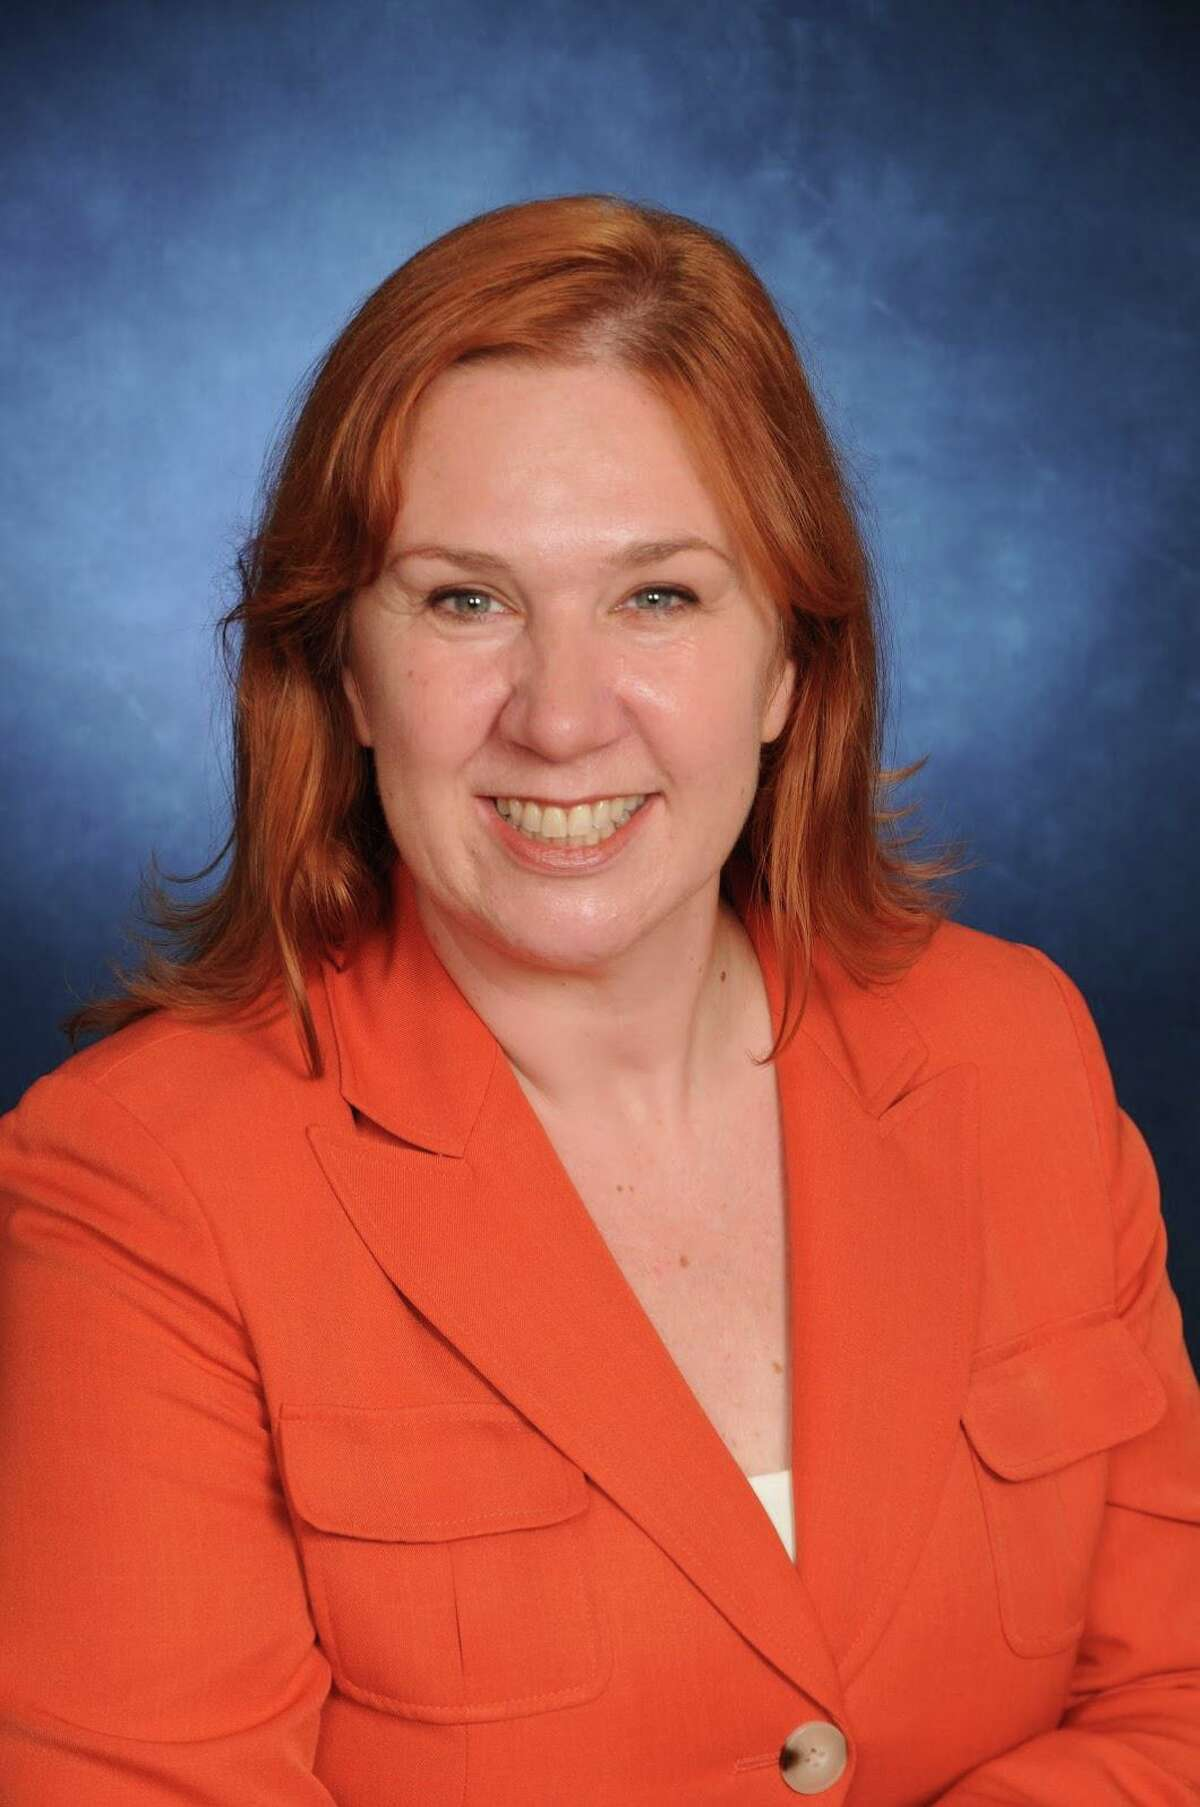 The Connecticut River Museum has selected Jennifer L. Carlson as its new Executive Director, starting Aug. 4.